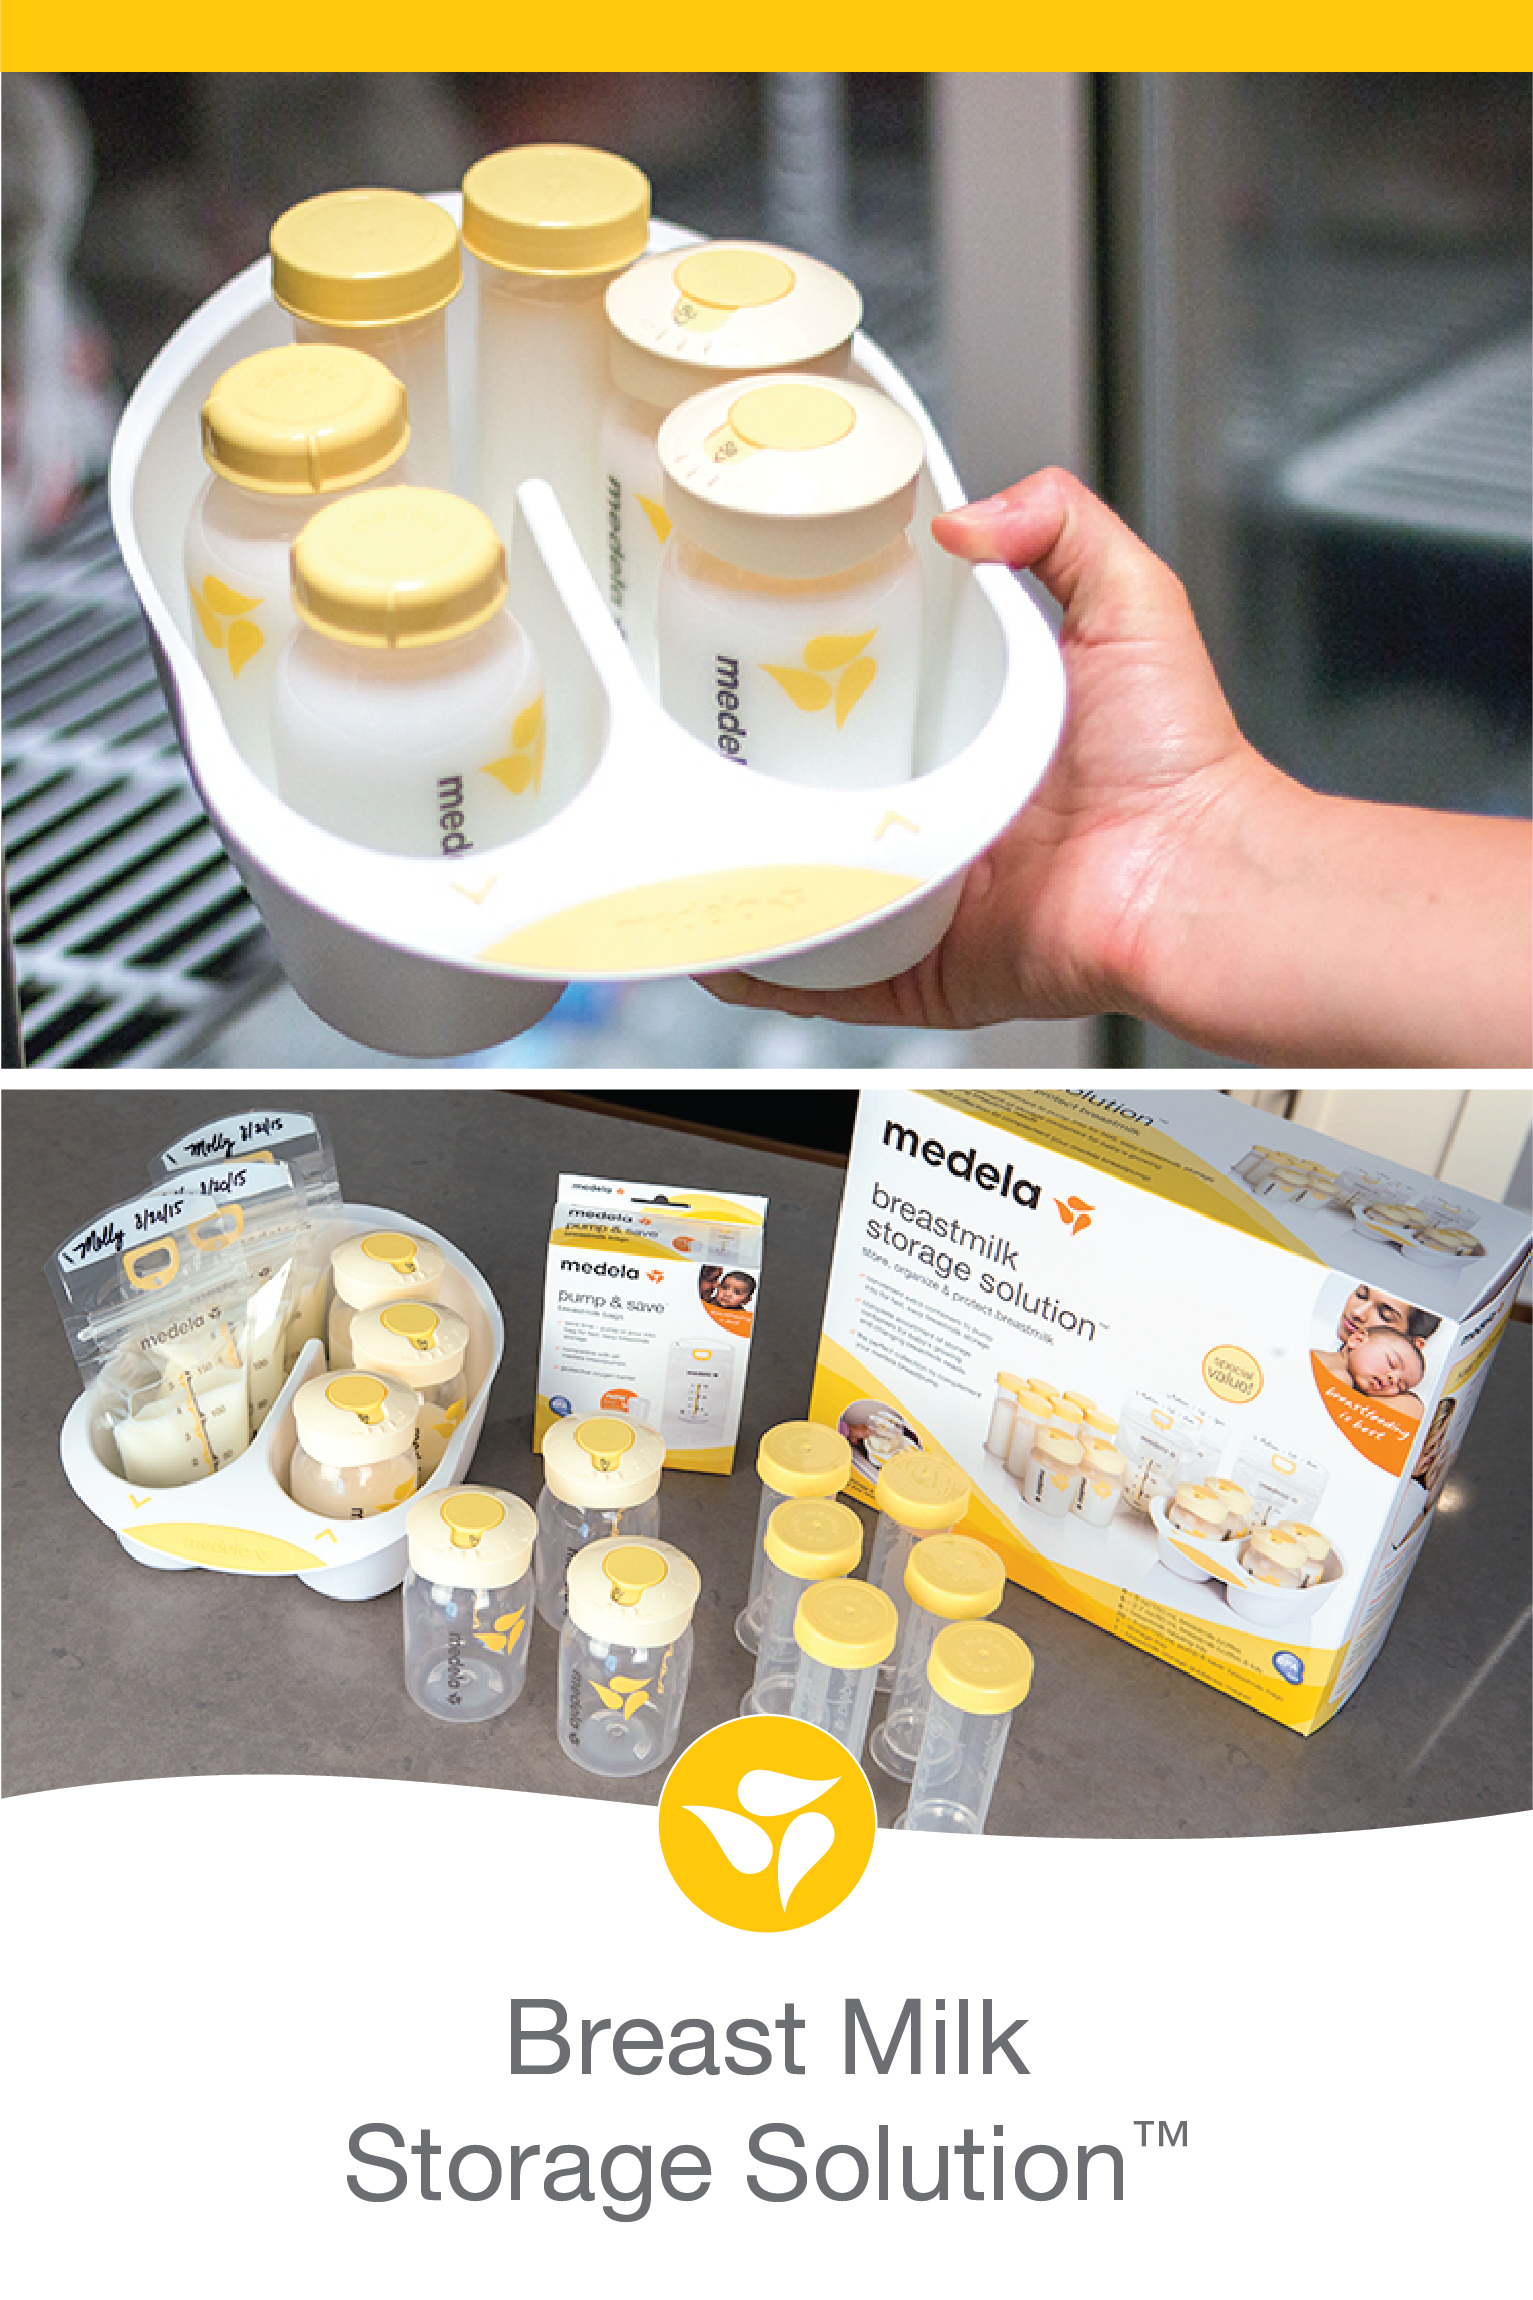 240c35ce00bb The perfect complement to any Medela breast pump! This is a complete  assortment of storage containers for baby's growing and changing breast milk  needs.